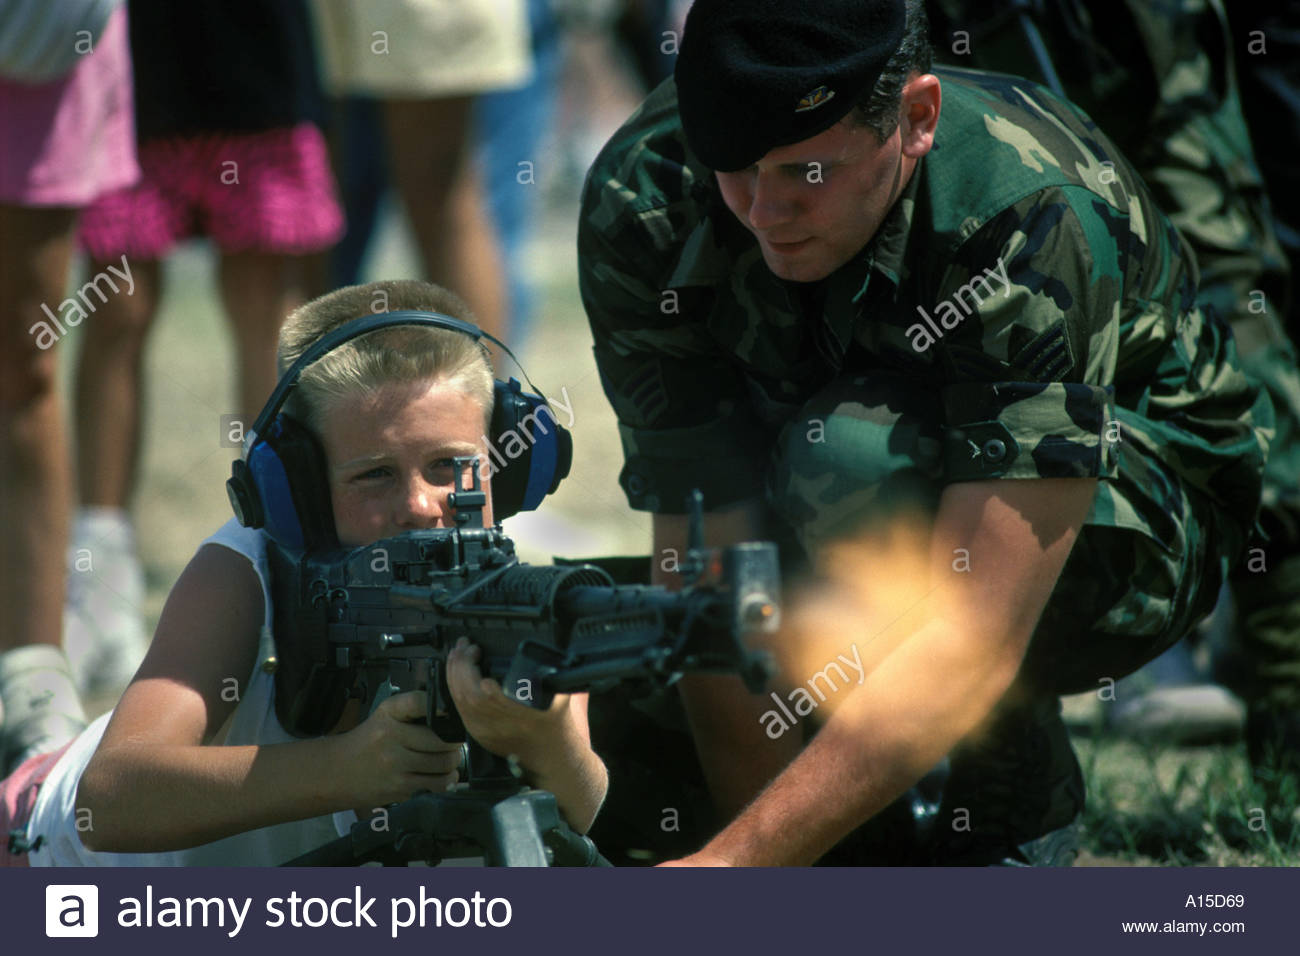 Boy fires demo M60 machinegun at Airforce Base open house - Stock Image